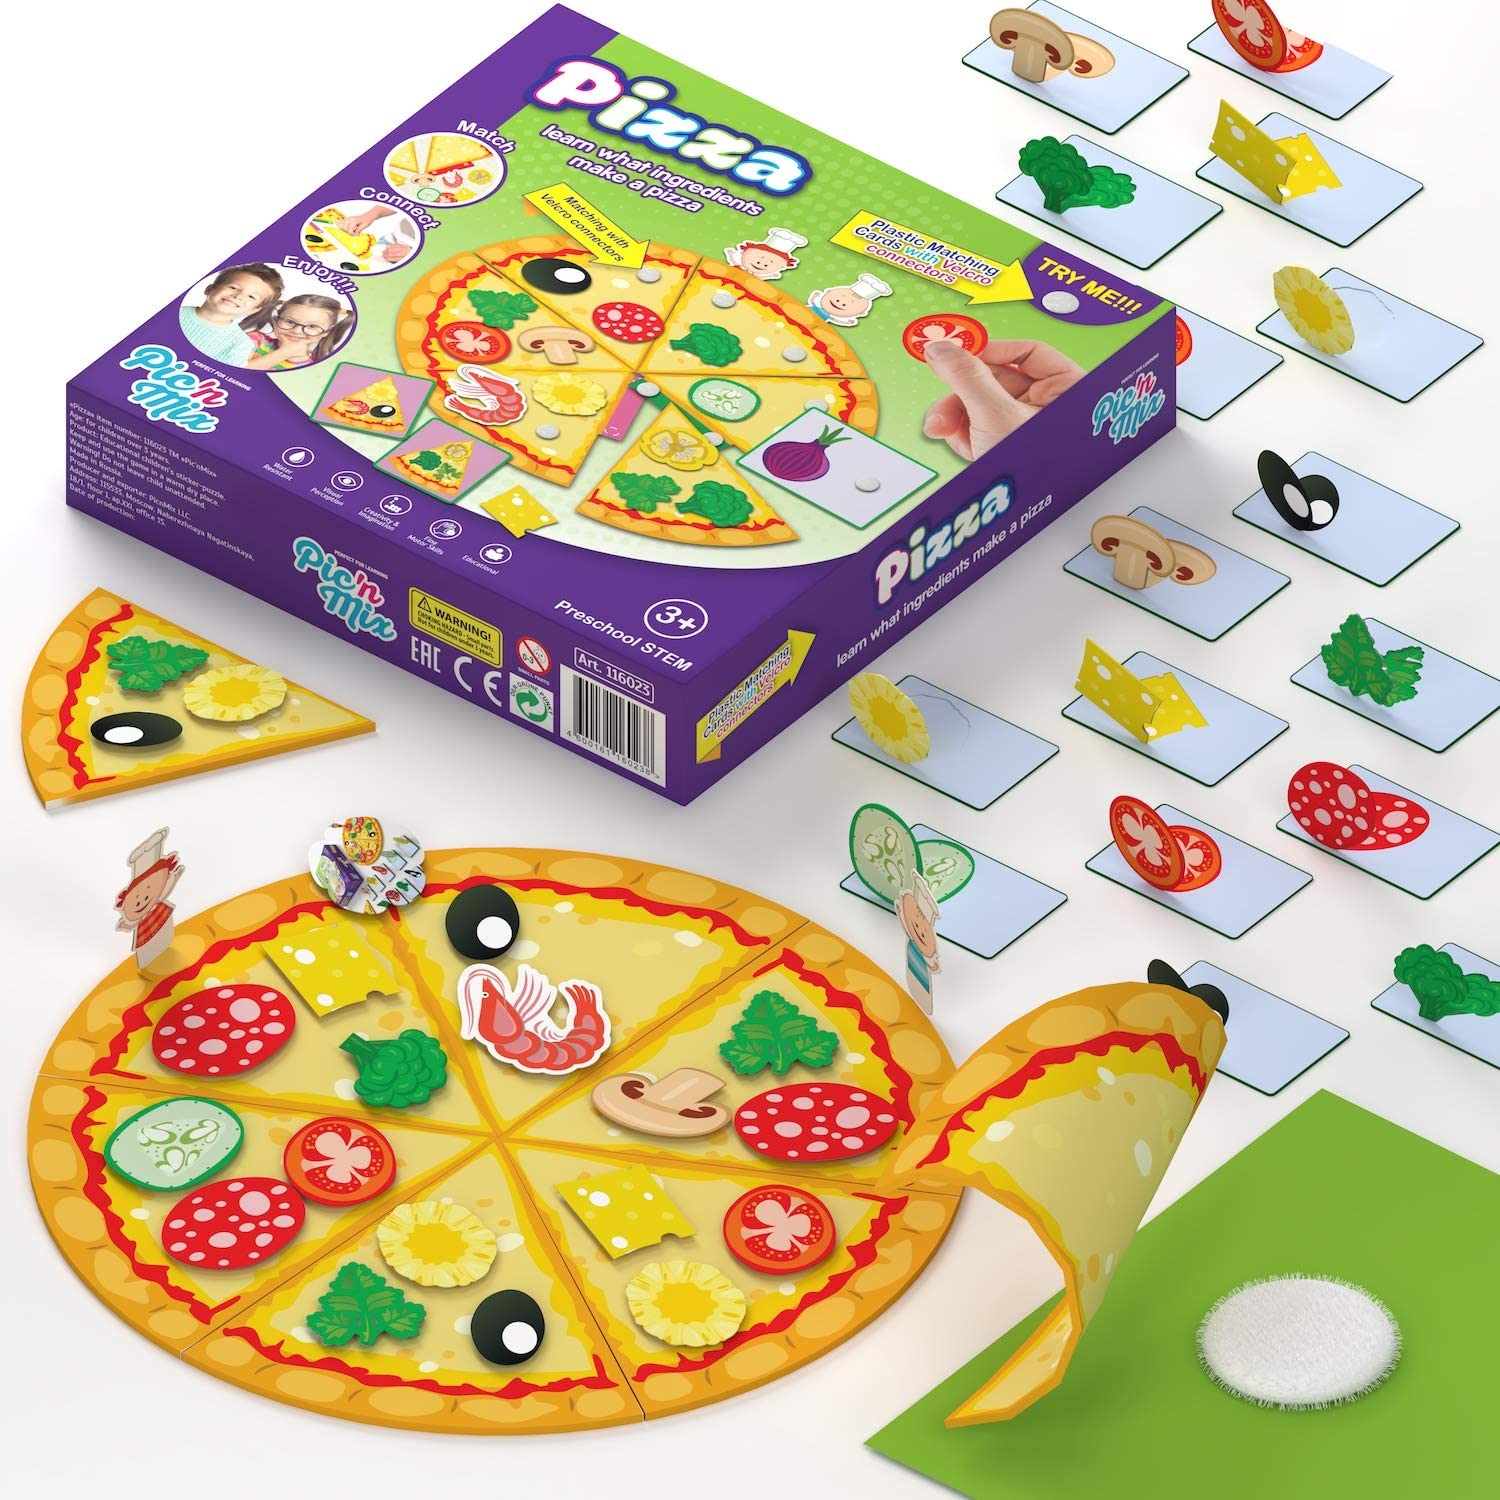 Picnmix Pizza Game- Pizza Toy for Kids Kitchen Playset Plastic Food- Game Fields, Attached Elements, Sample Cards (39 Pcs)- Perfect Toy Food for Play Kitchen-Pretend Pizza Sets for Kids